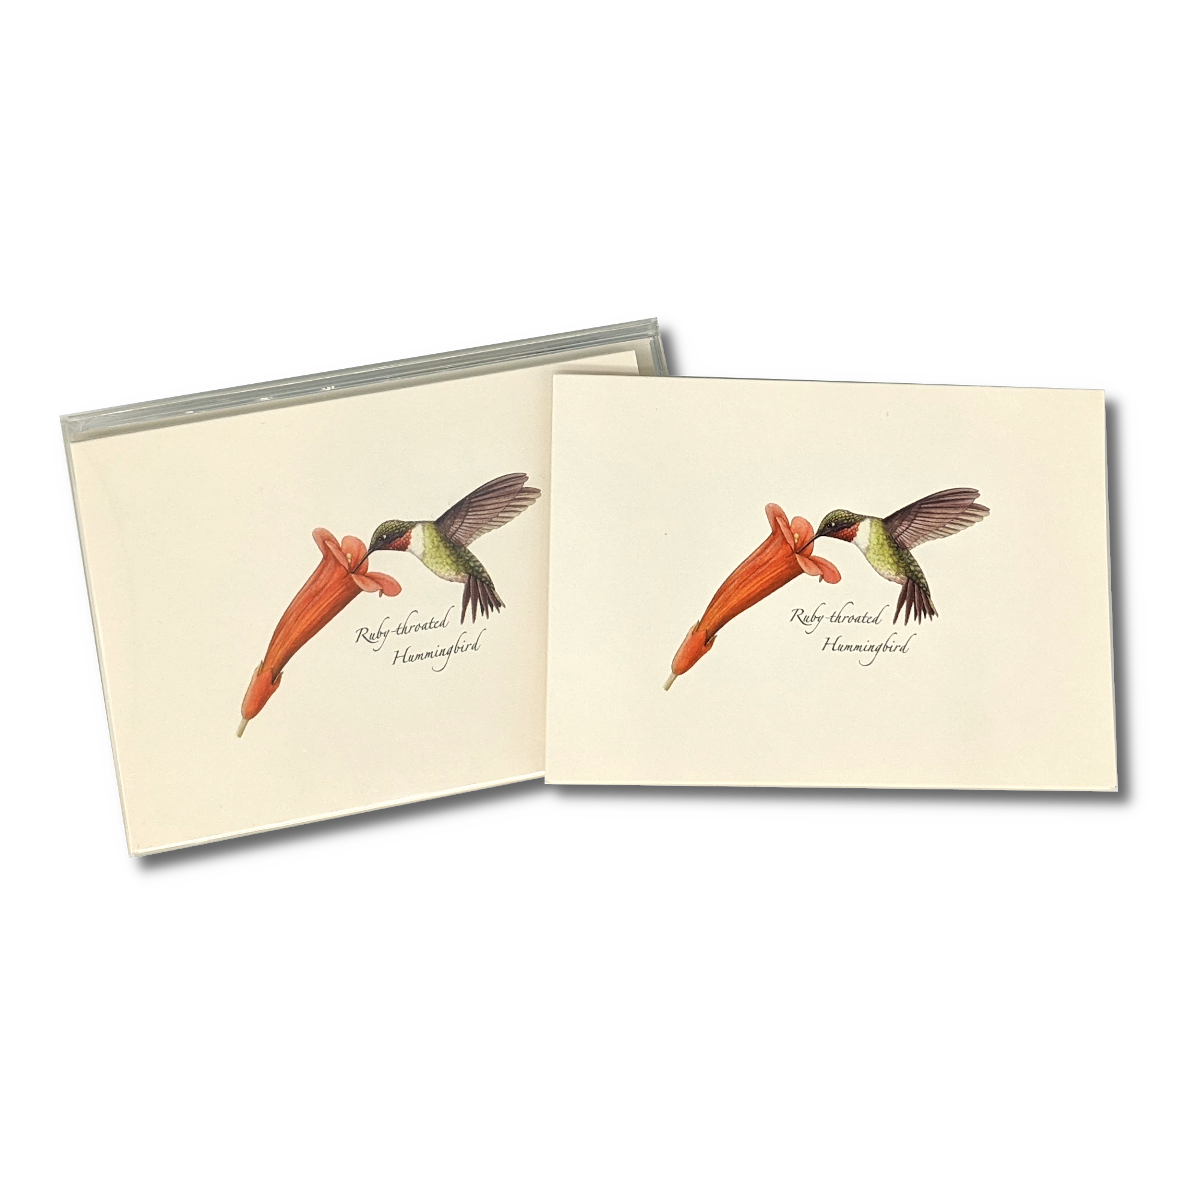 A box of Ruby-throated Hummingbird notecards